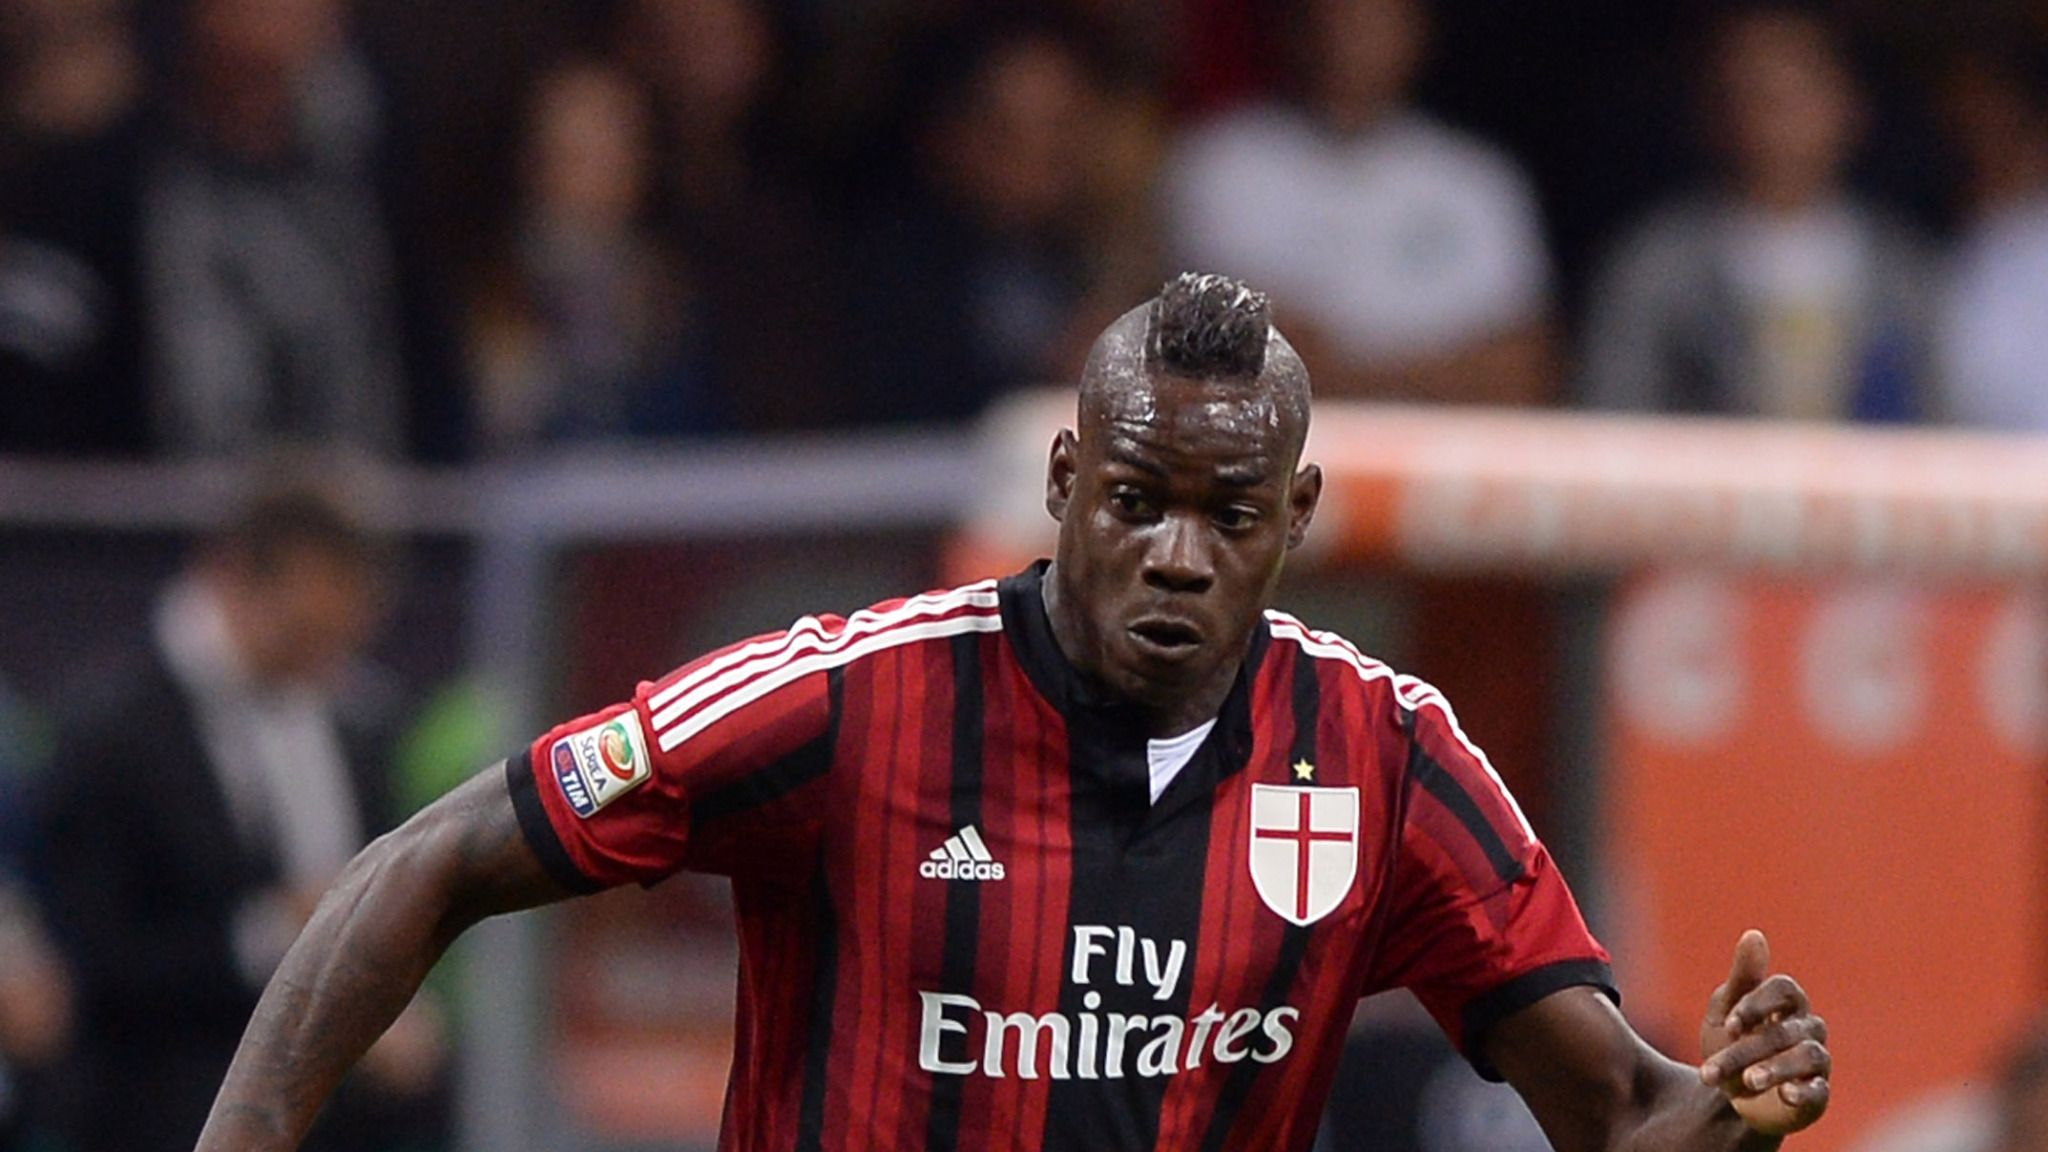 Transfer News Mario Balotelli To Stay At Ac Milan According To Adriano Galliani Football News Sky Sports